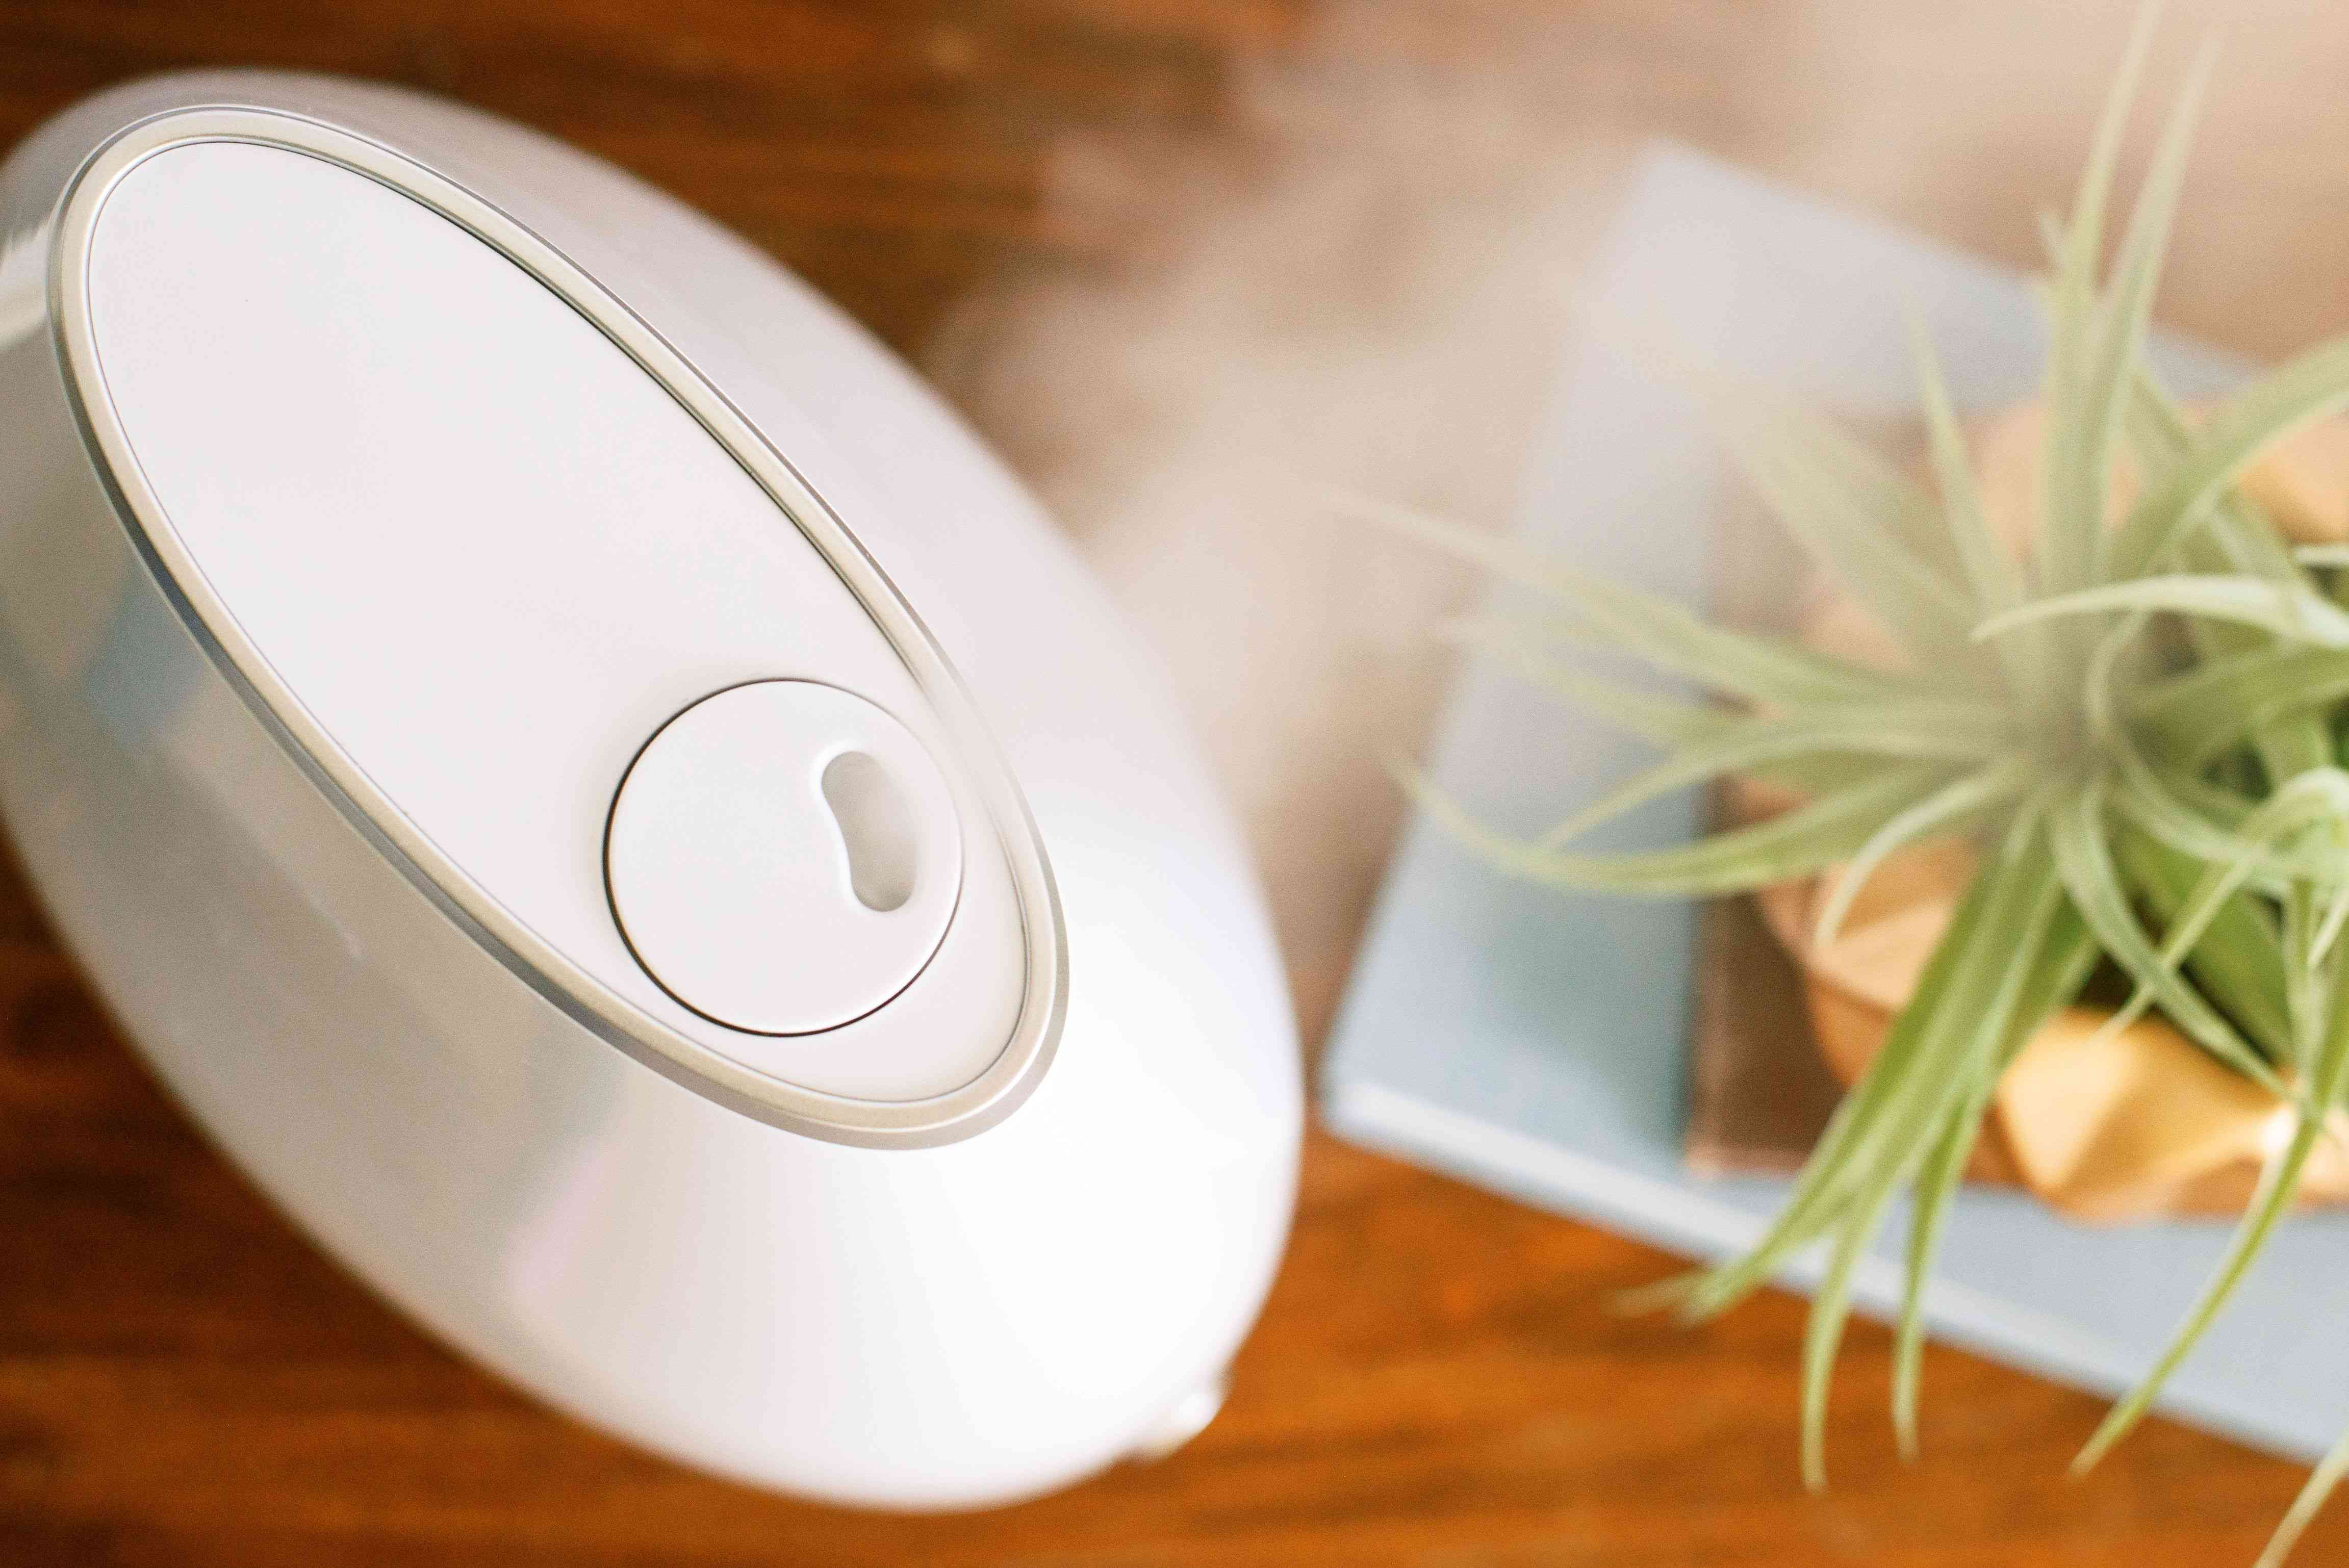 Humidifier emitting steam next to houseplant